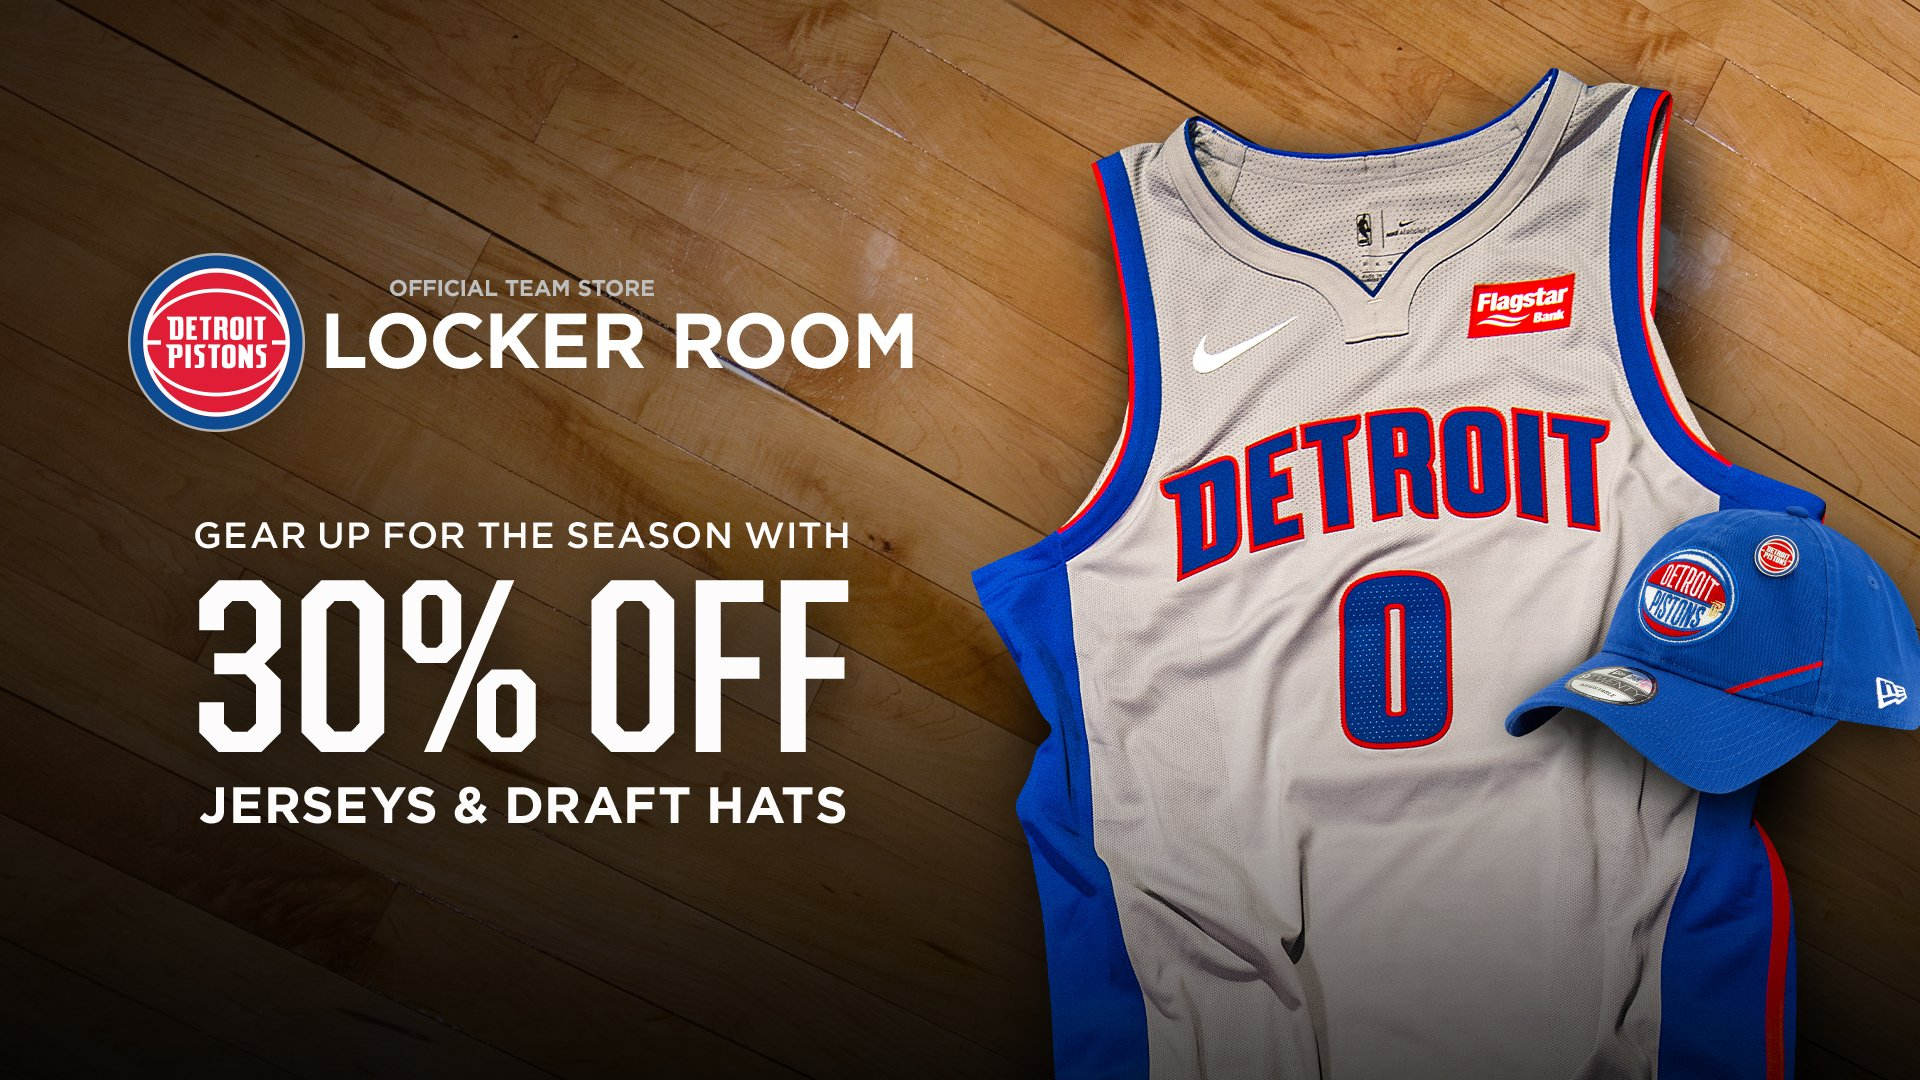 best loved ec6bc 93648 Detroit Pistons - Twitter Photo - Jerseys. Draft hats. Both ...